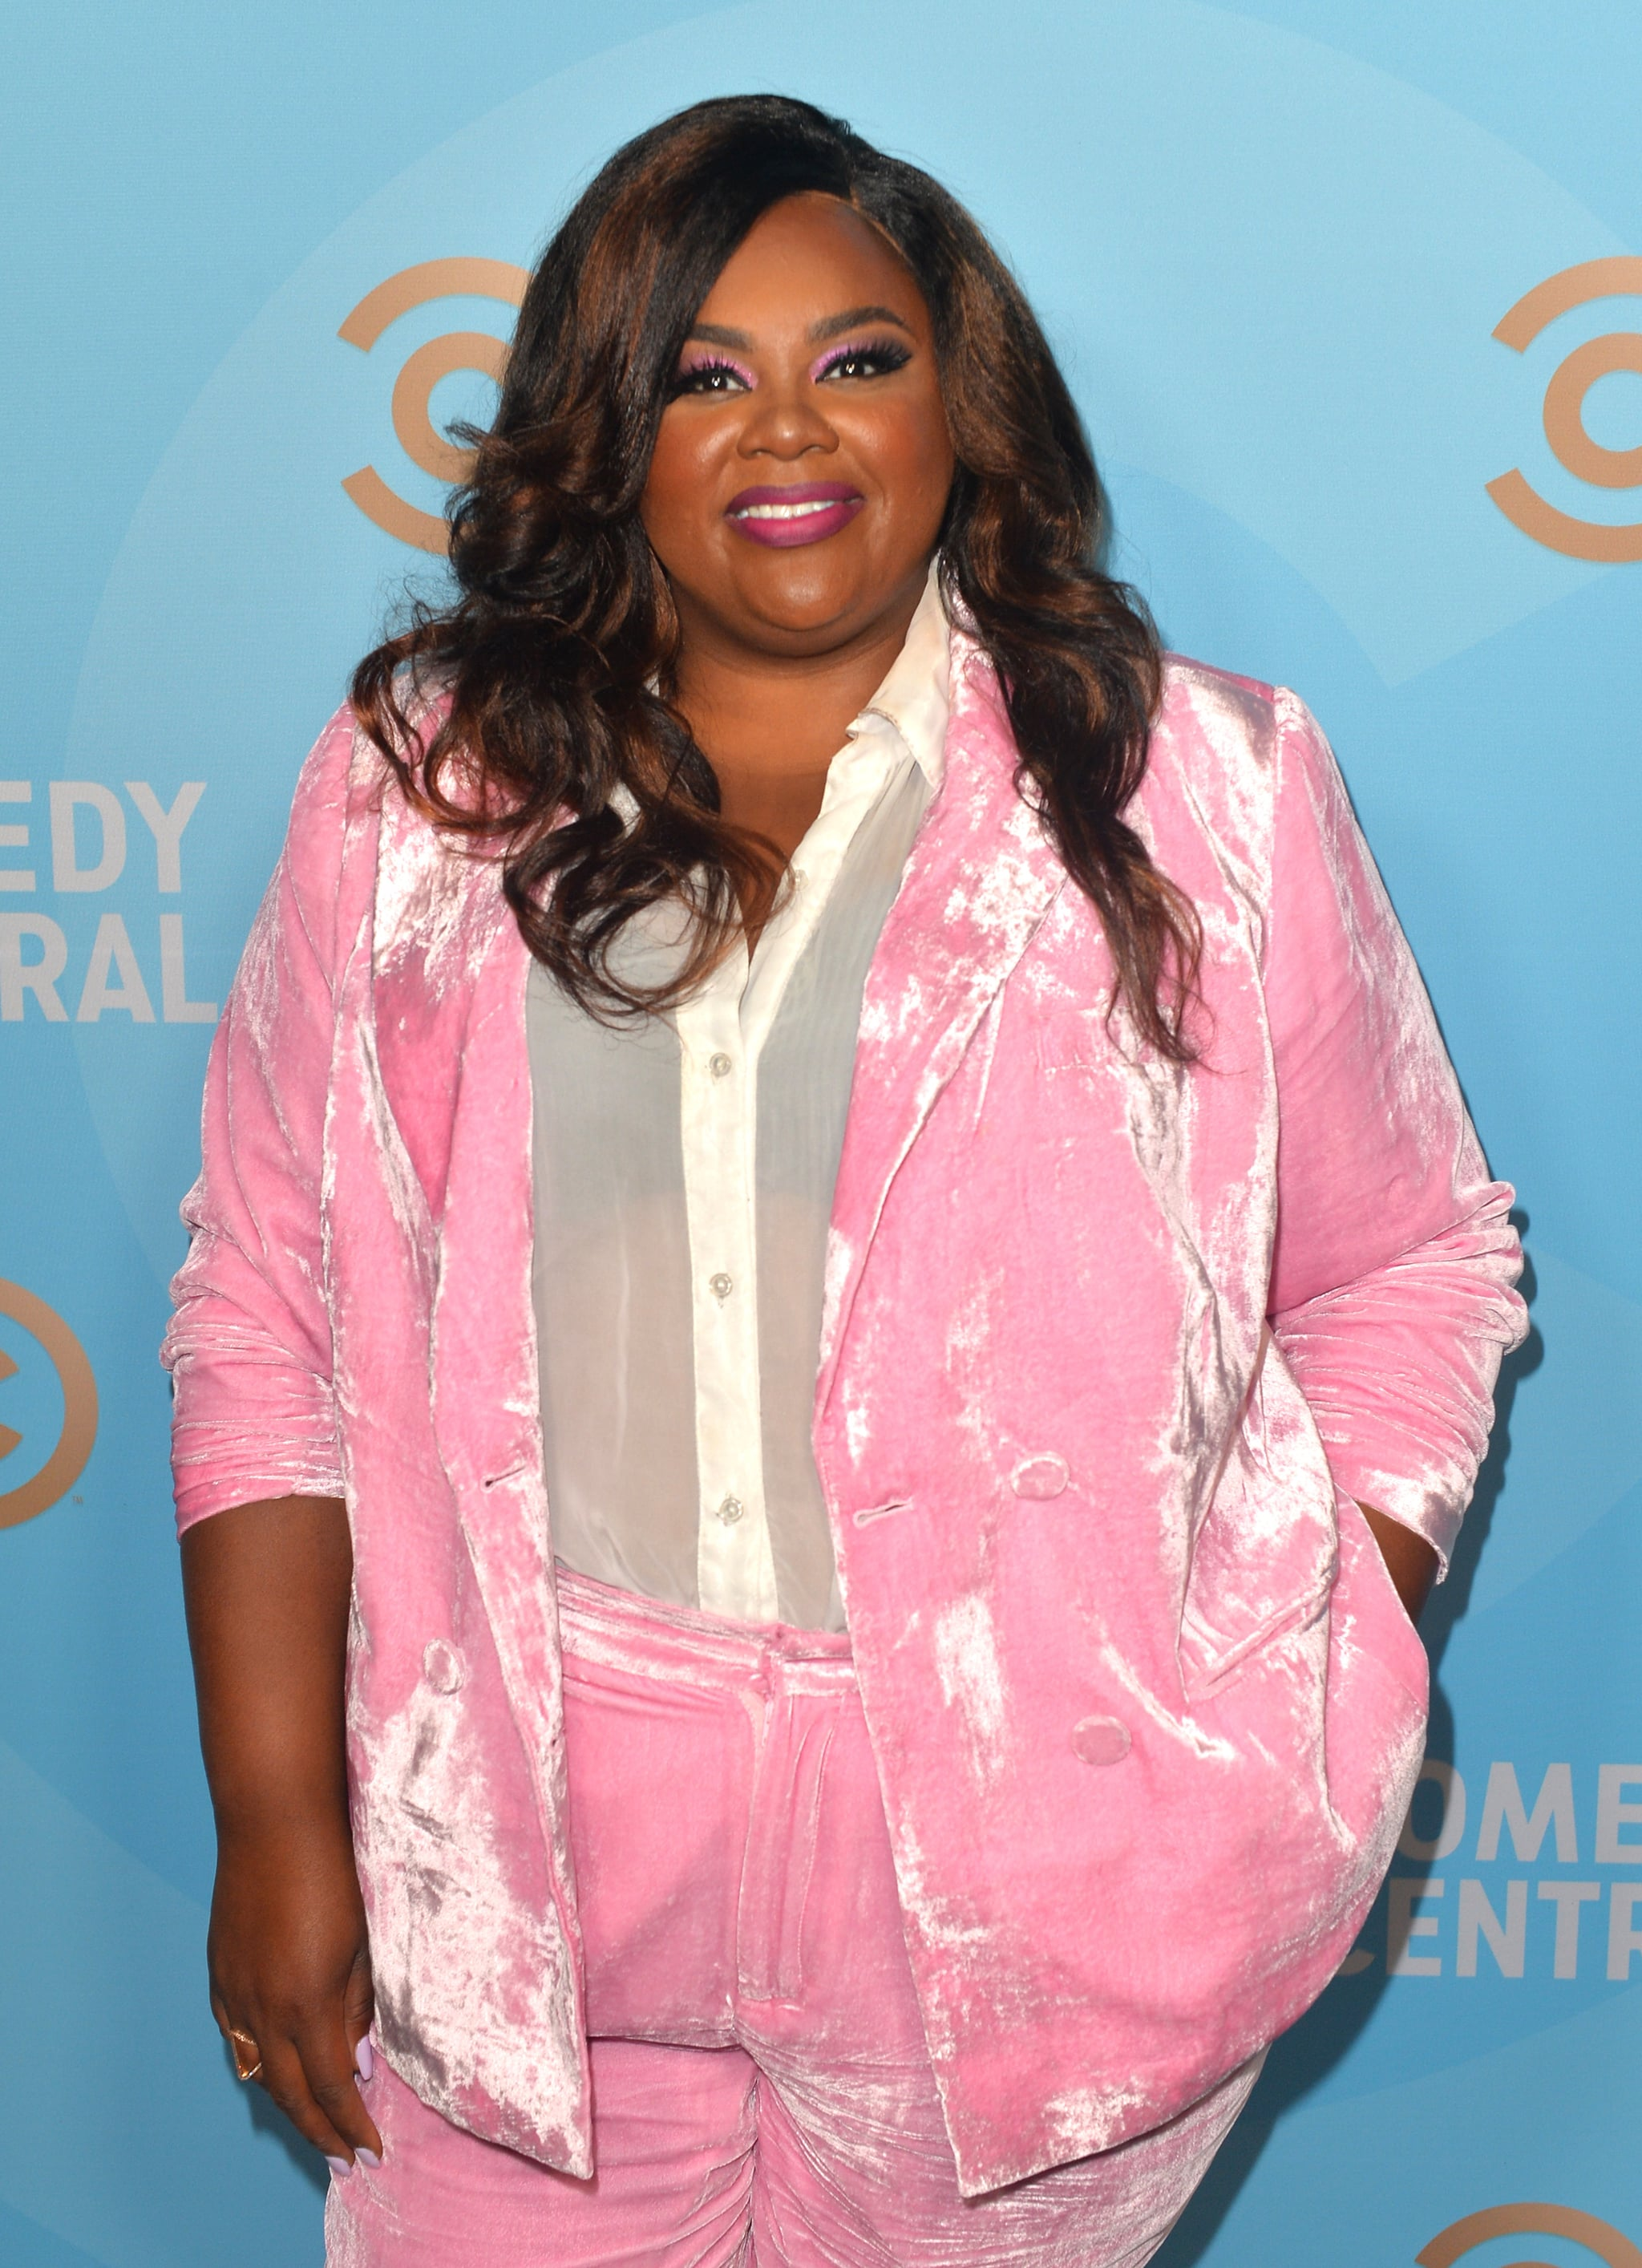 HOLLYWOOD, CALIFORNIA - SEPTEMBER 21: Nicole Byer attends Comedy Central's Emmy Party at Dream Hotel on September 21, 2019 in Hollywood, California. (Photo by Jerod Harris/Getty Images for Comedy Central)